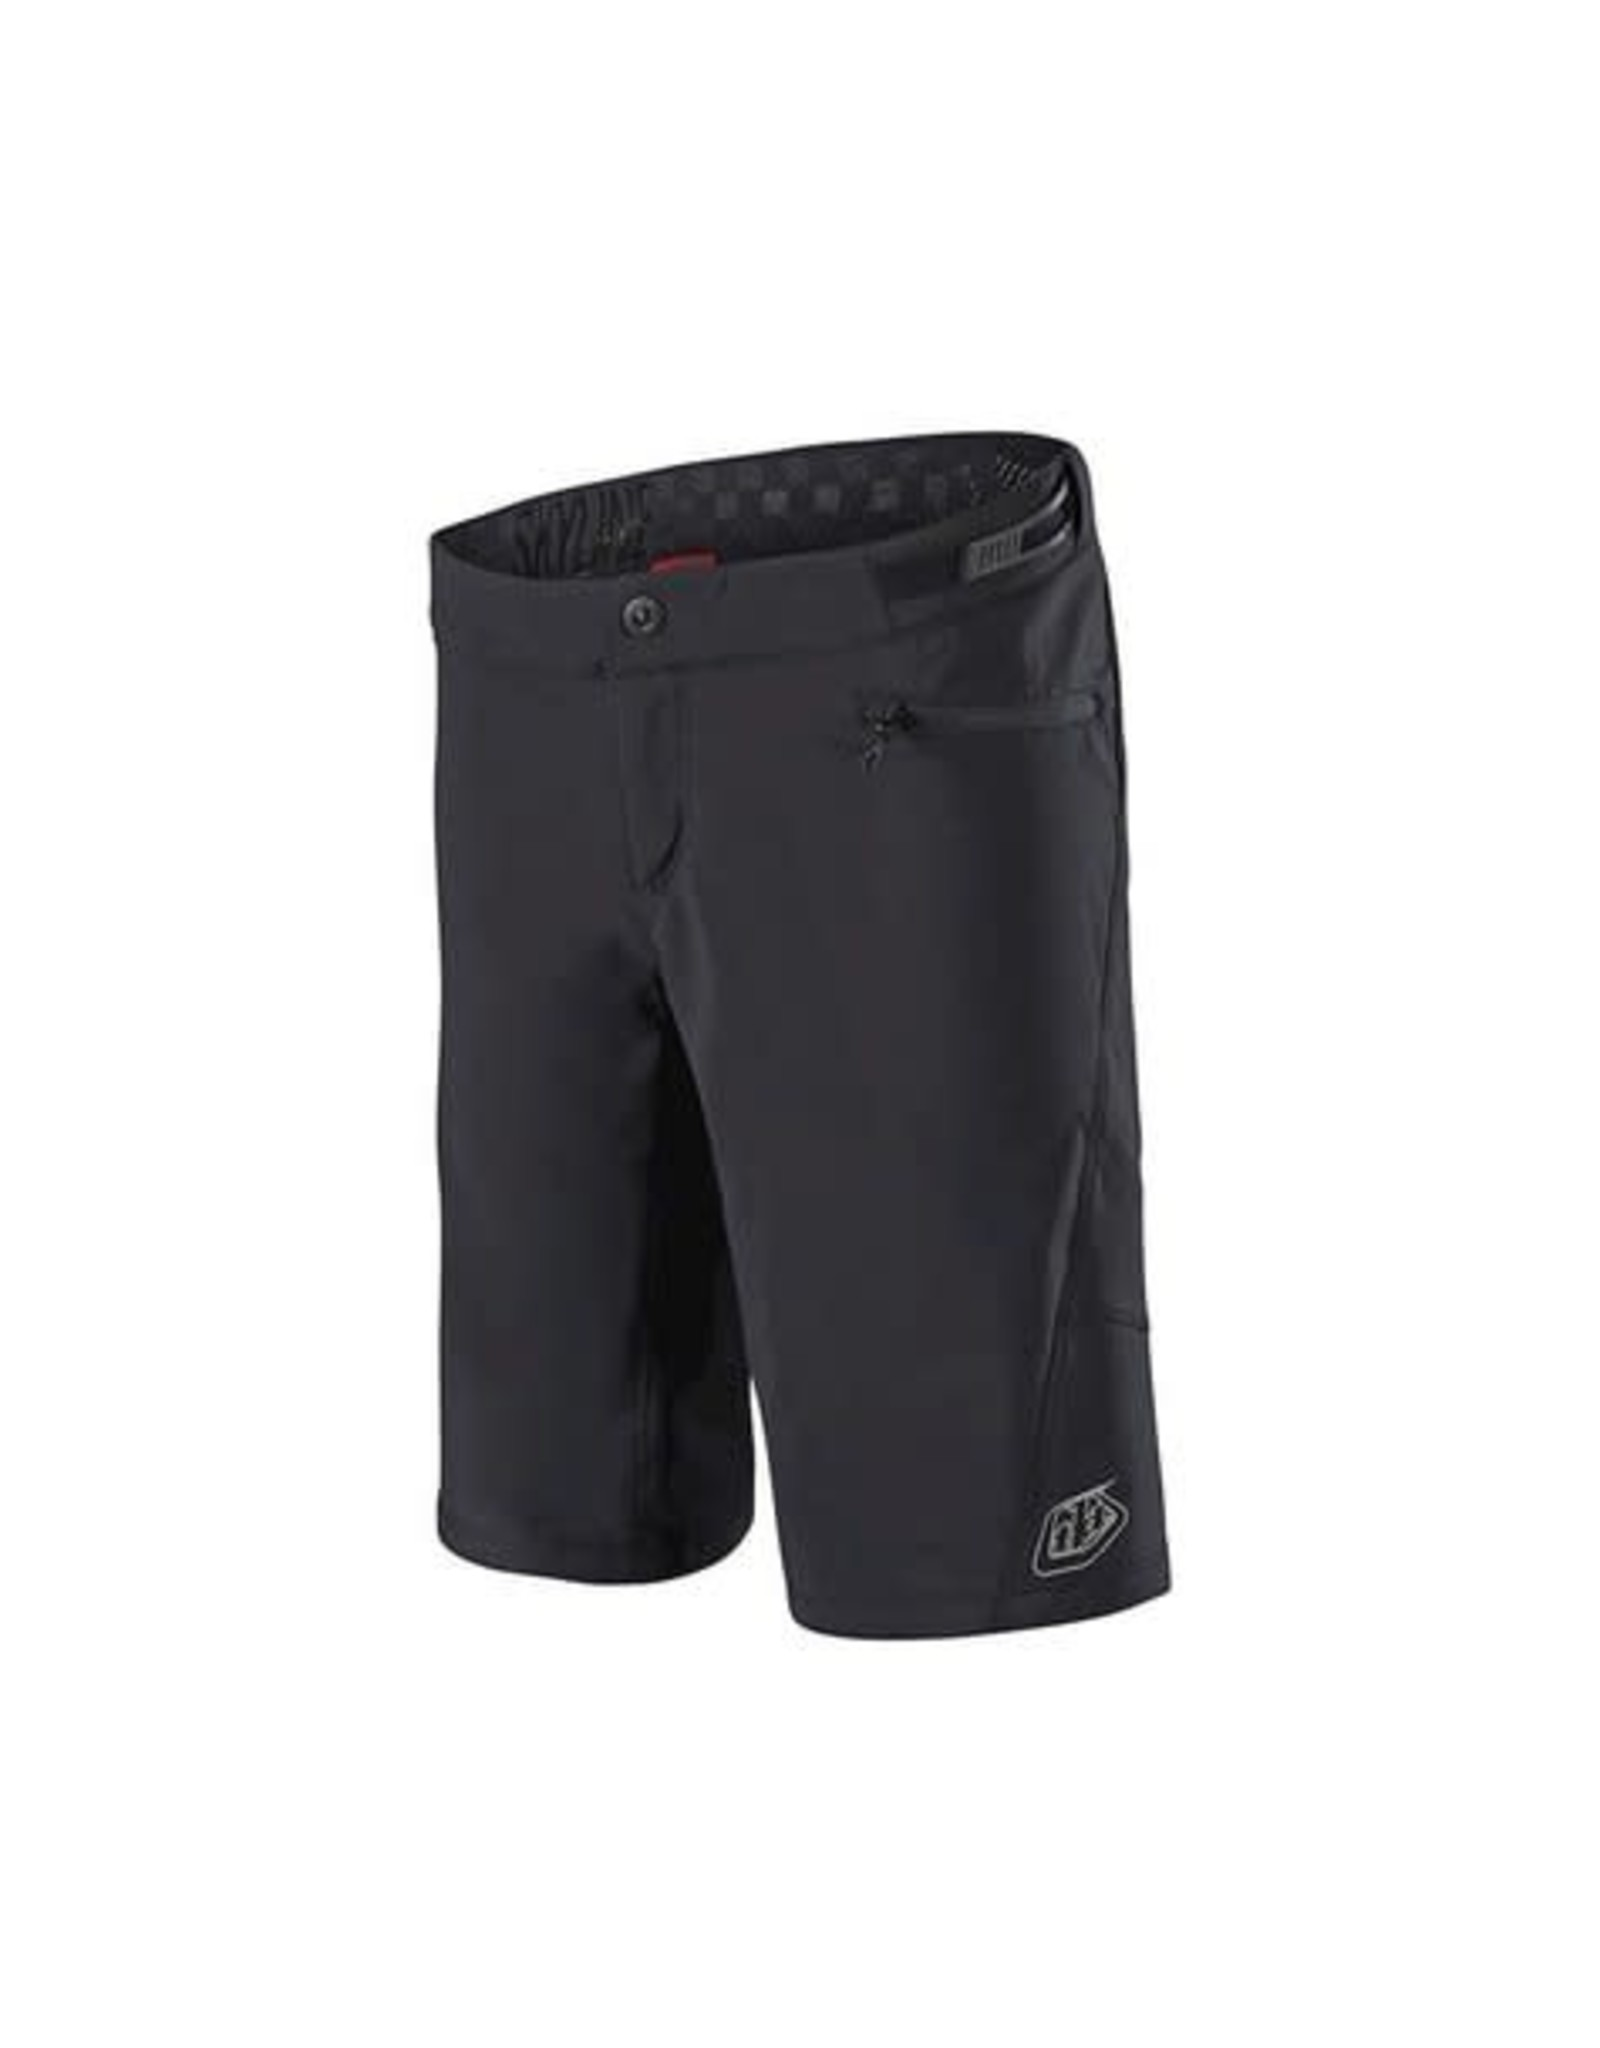 WMNS SKYLINE SHORT; BLACK / BLACK MD